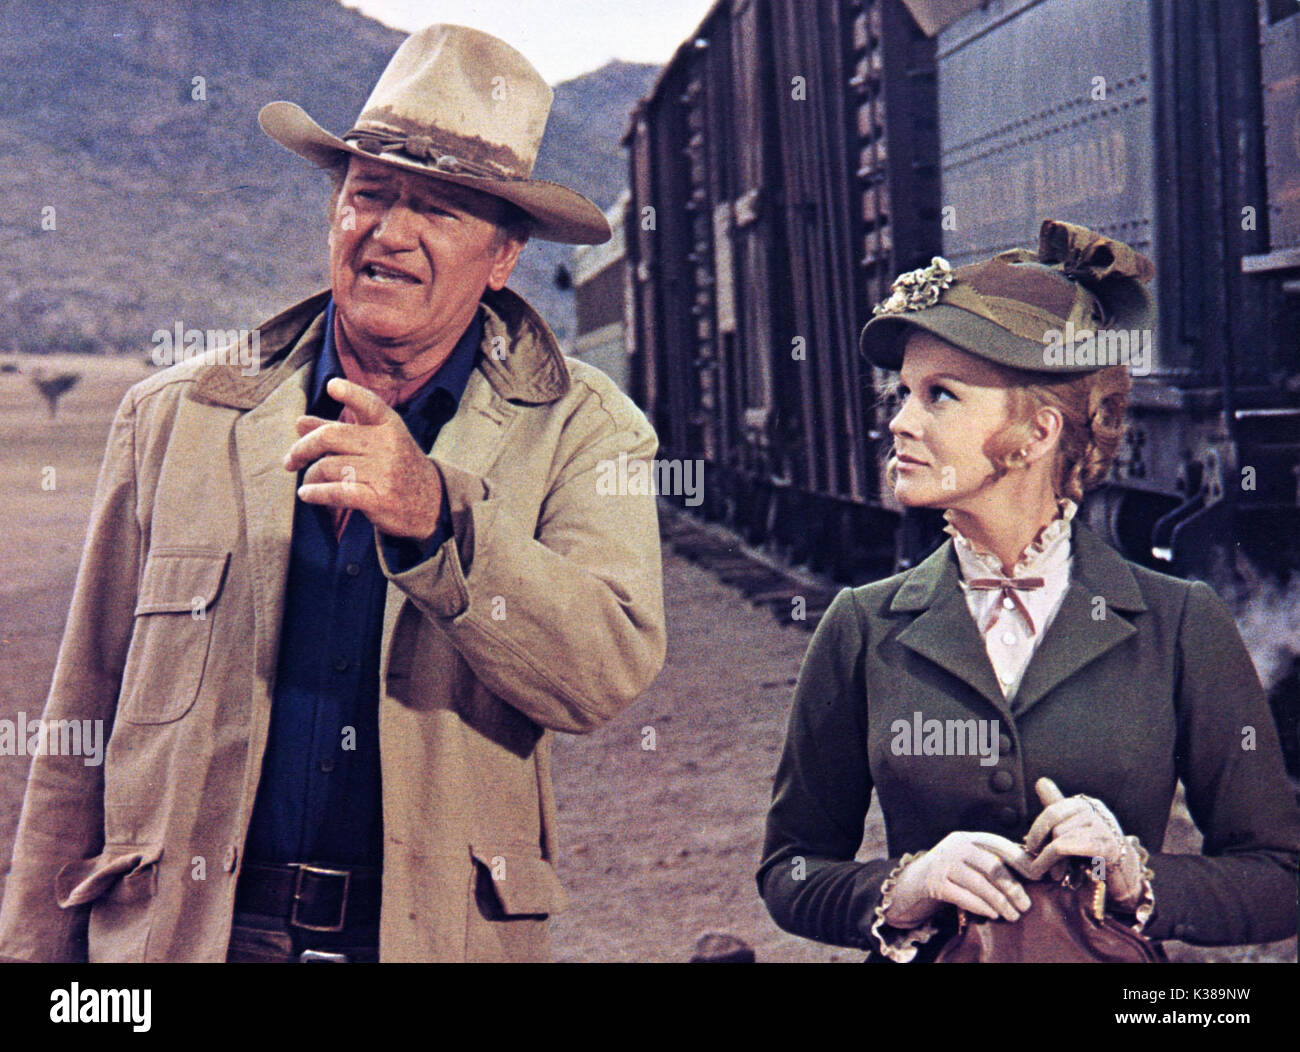 THE TRAIN ROBBERS JOHN WAYNE AND ANN-MARGARET A WARNER BROS FILM     Date: 1973 - Stock Image